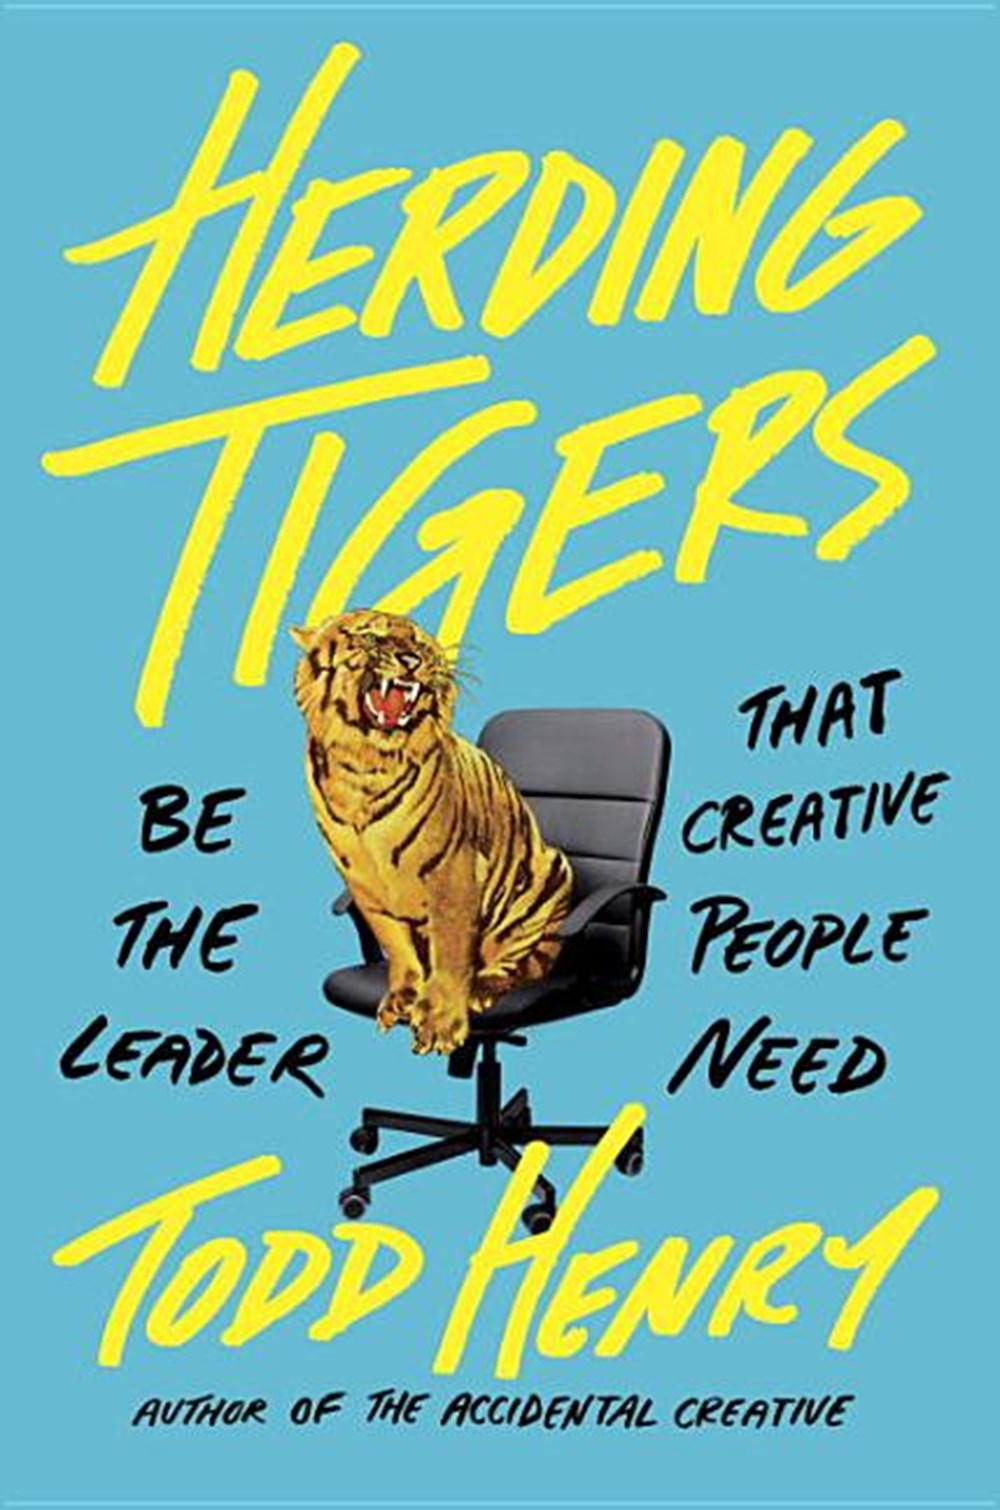 Herding Tigers Be the Leader That Creative People Need